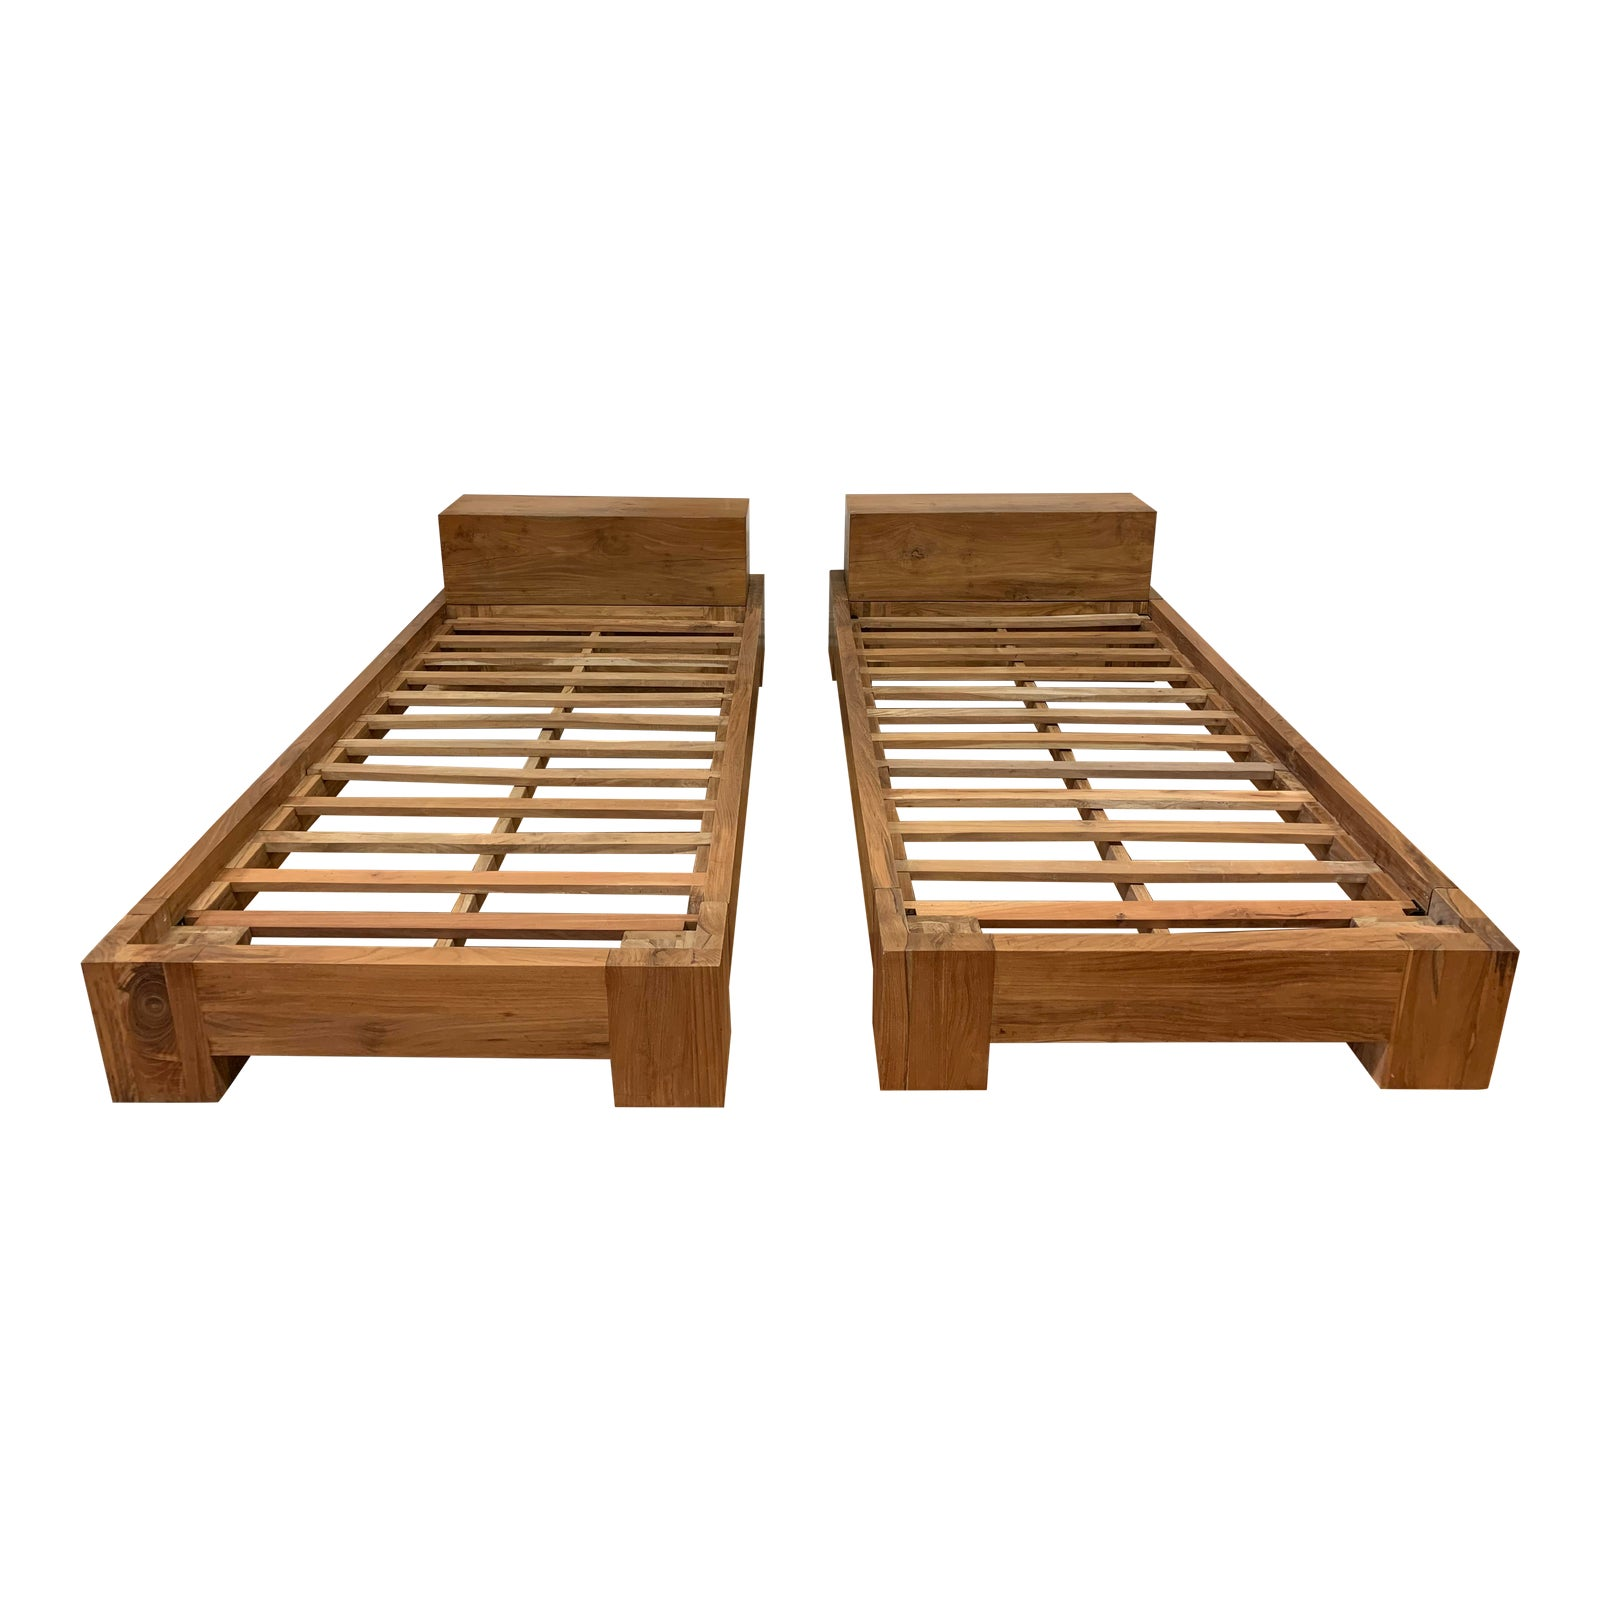 Pair Of Twin Size Solid Wood Bed Frames Original Price 4 000 Design Plus Gallery